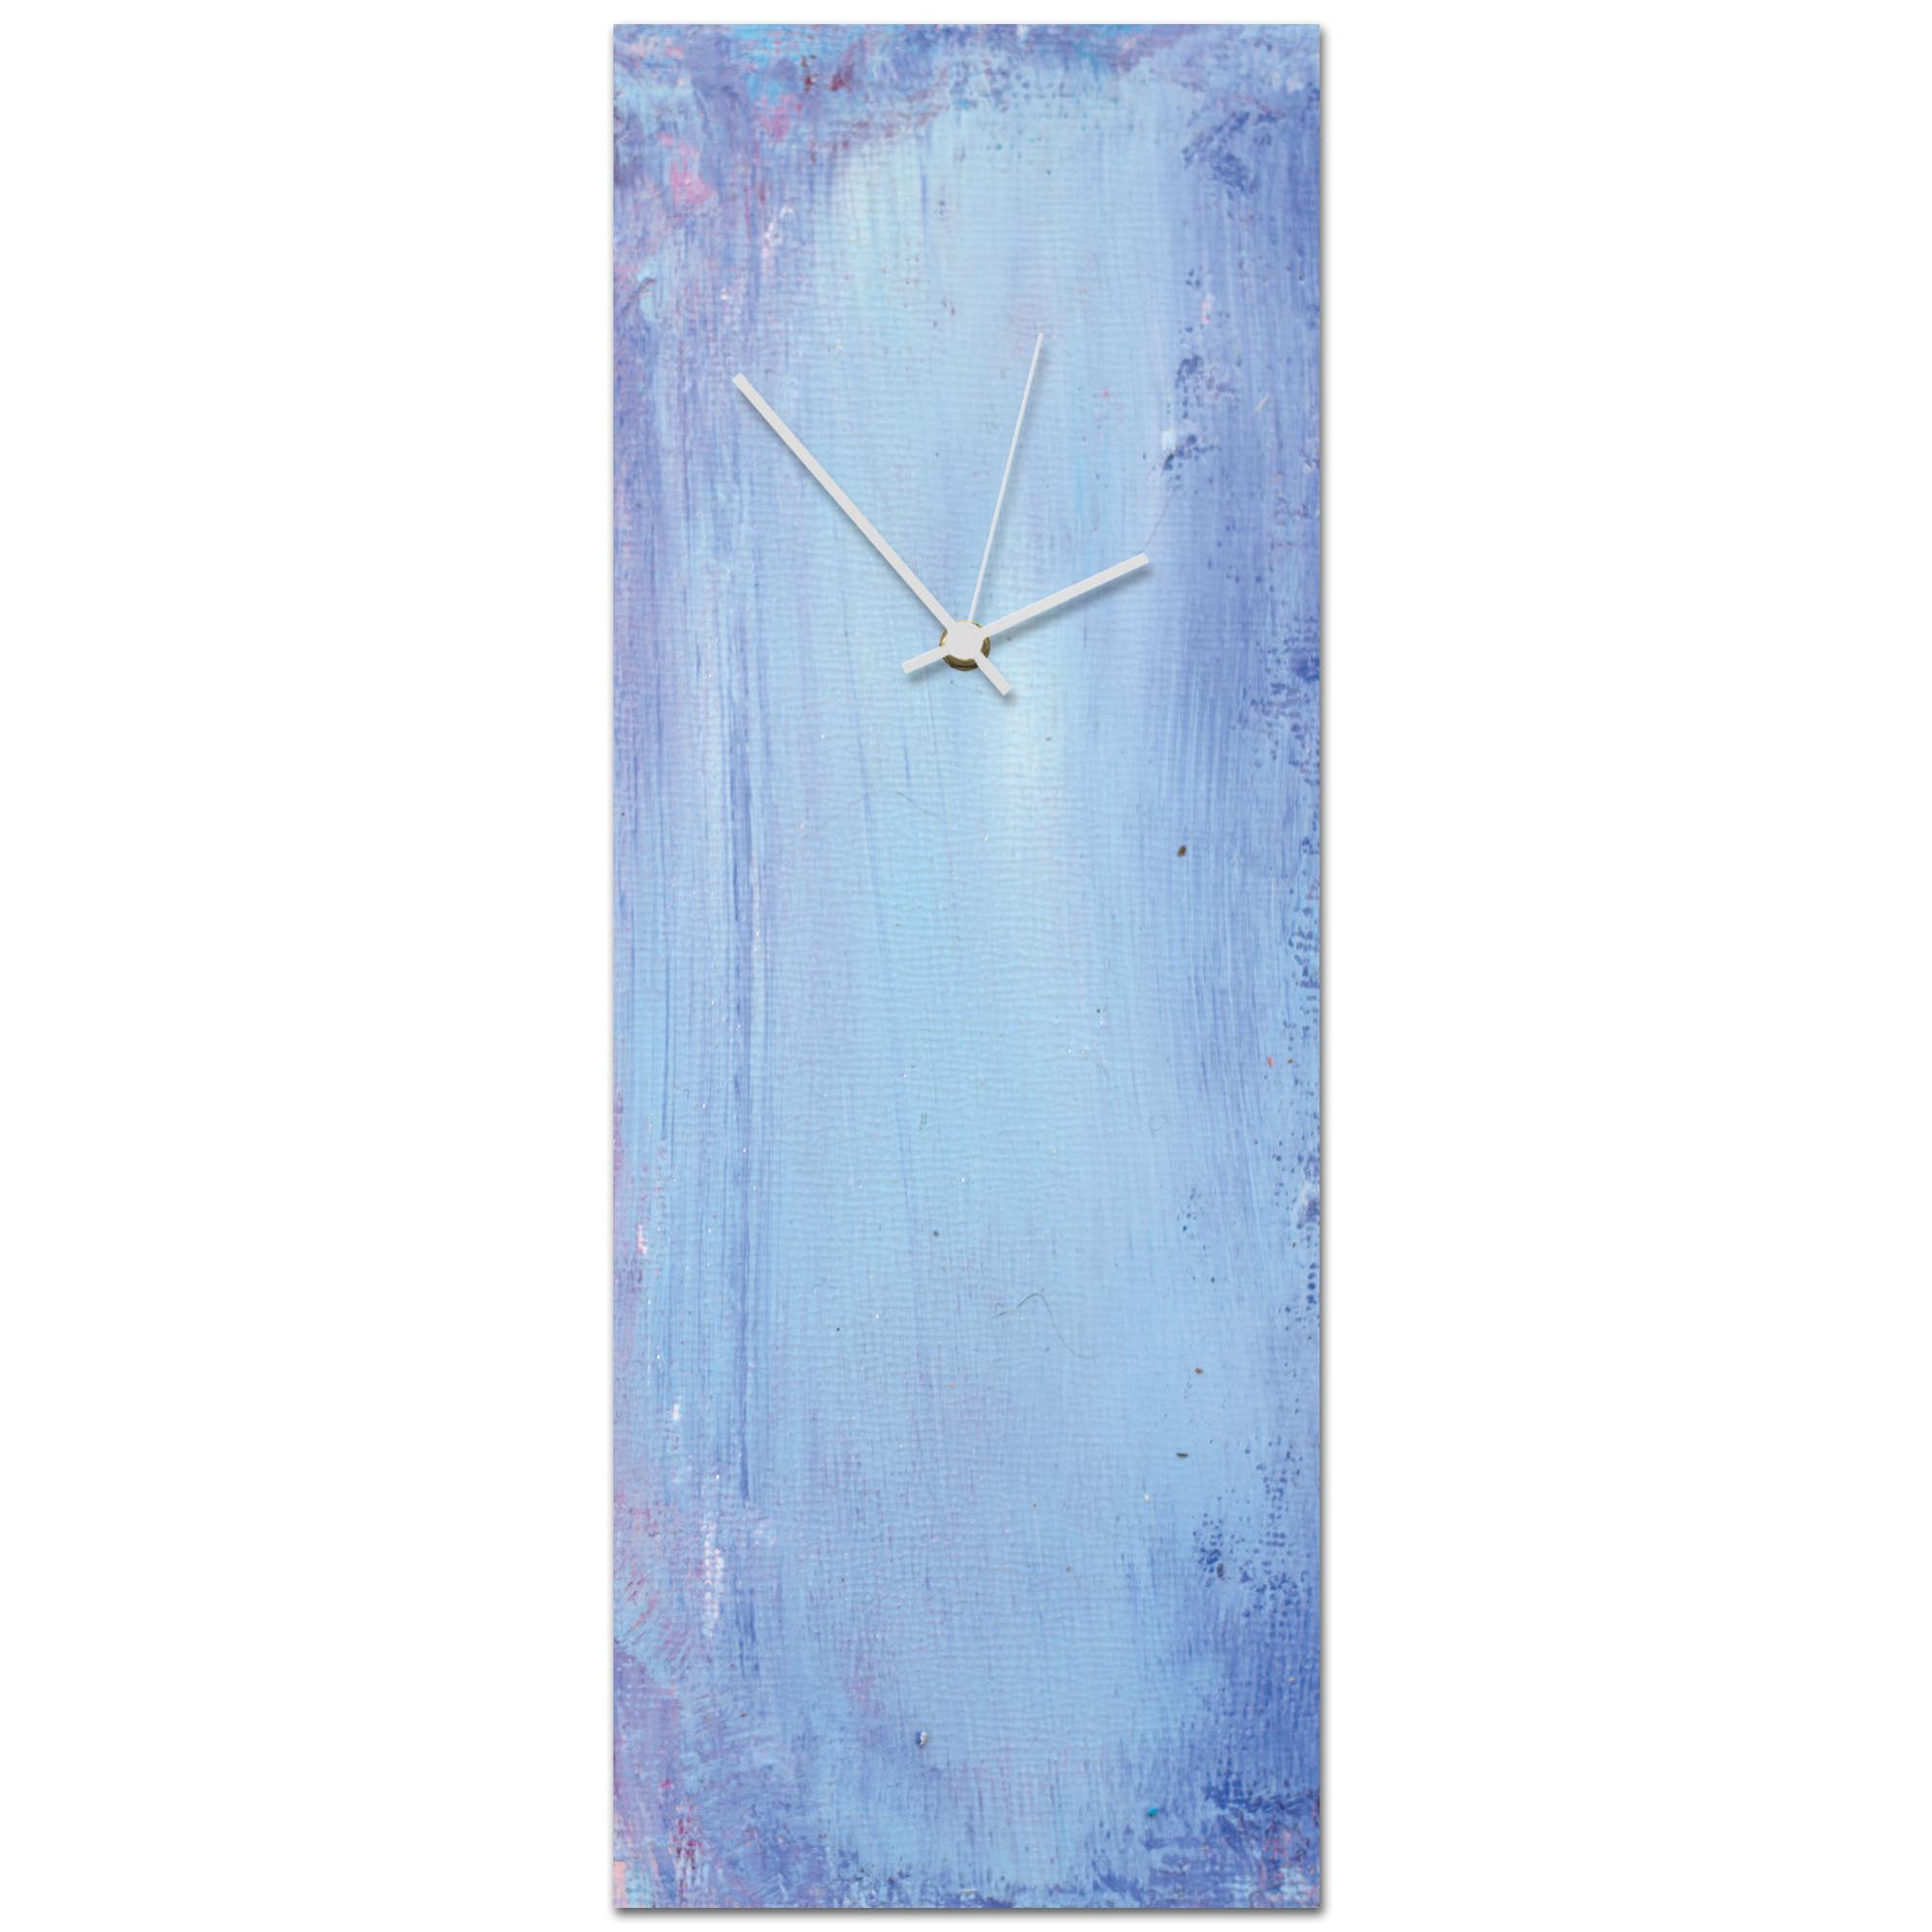 Urban Sky Clock Large 9x24in. Metal